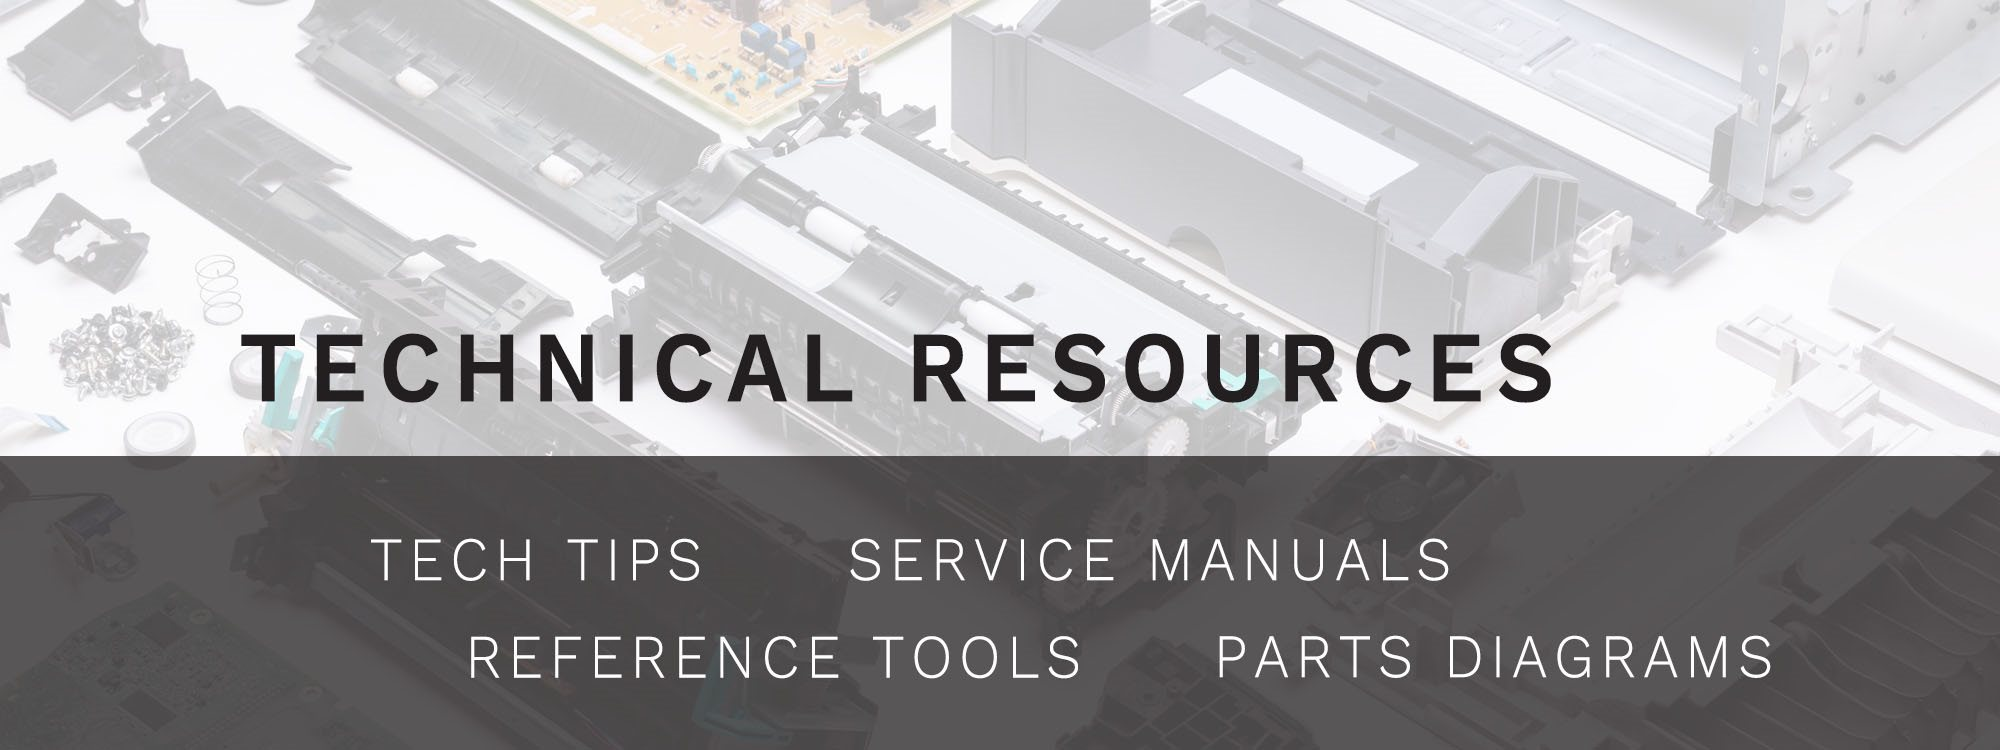 Tech Tips, Reference Tools, Service Manuals, Parts Diagrams